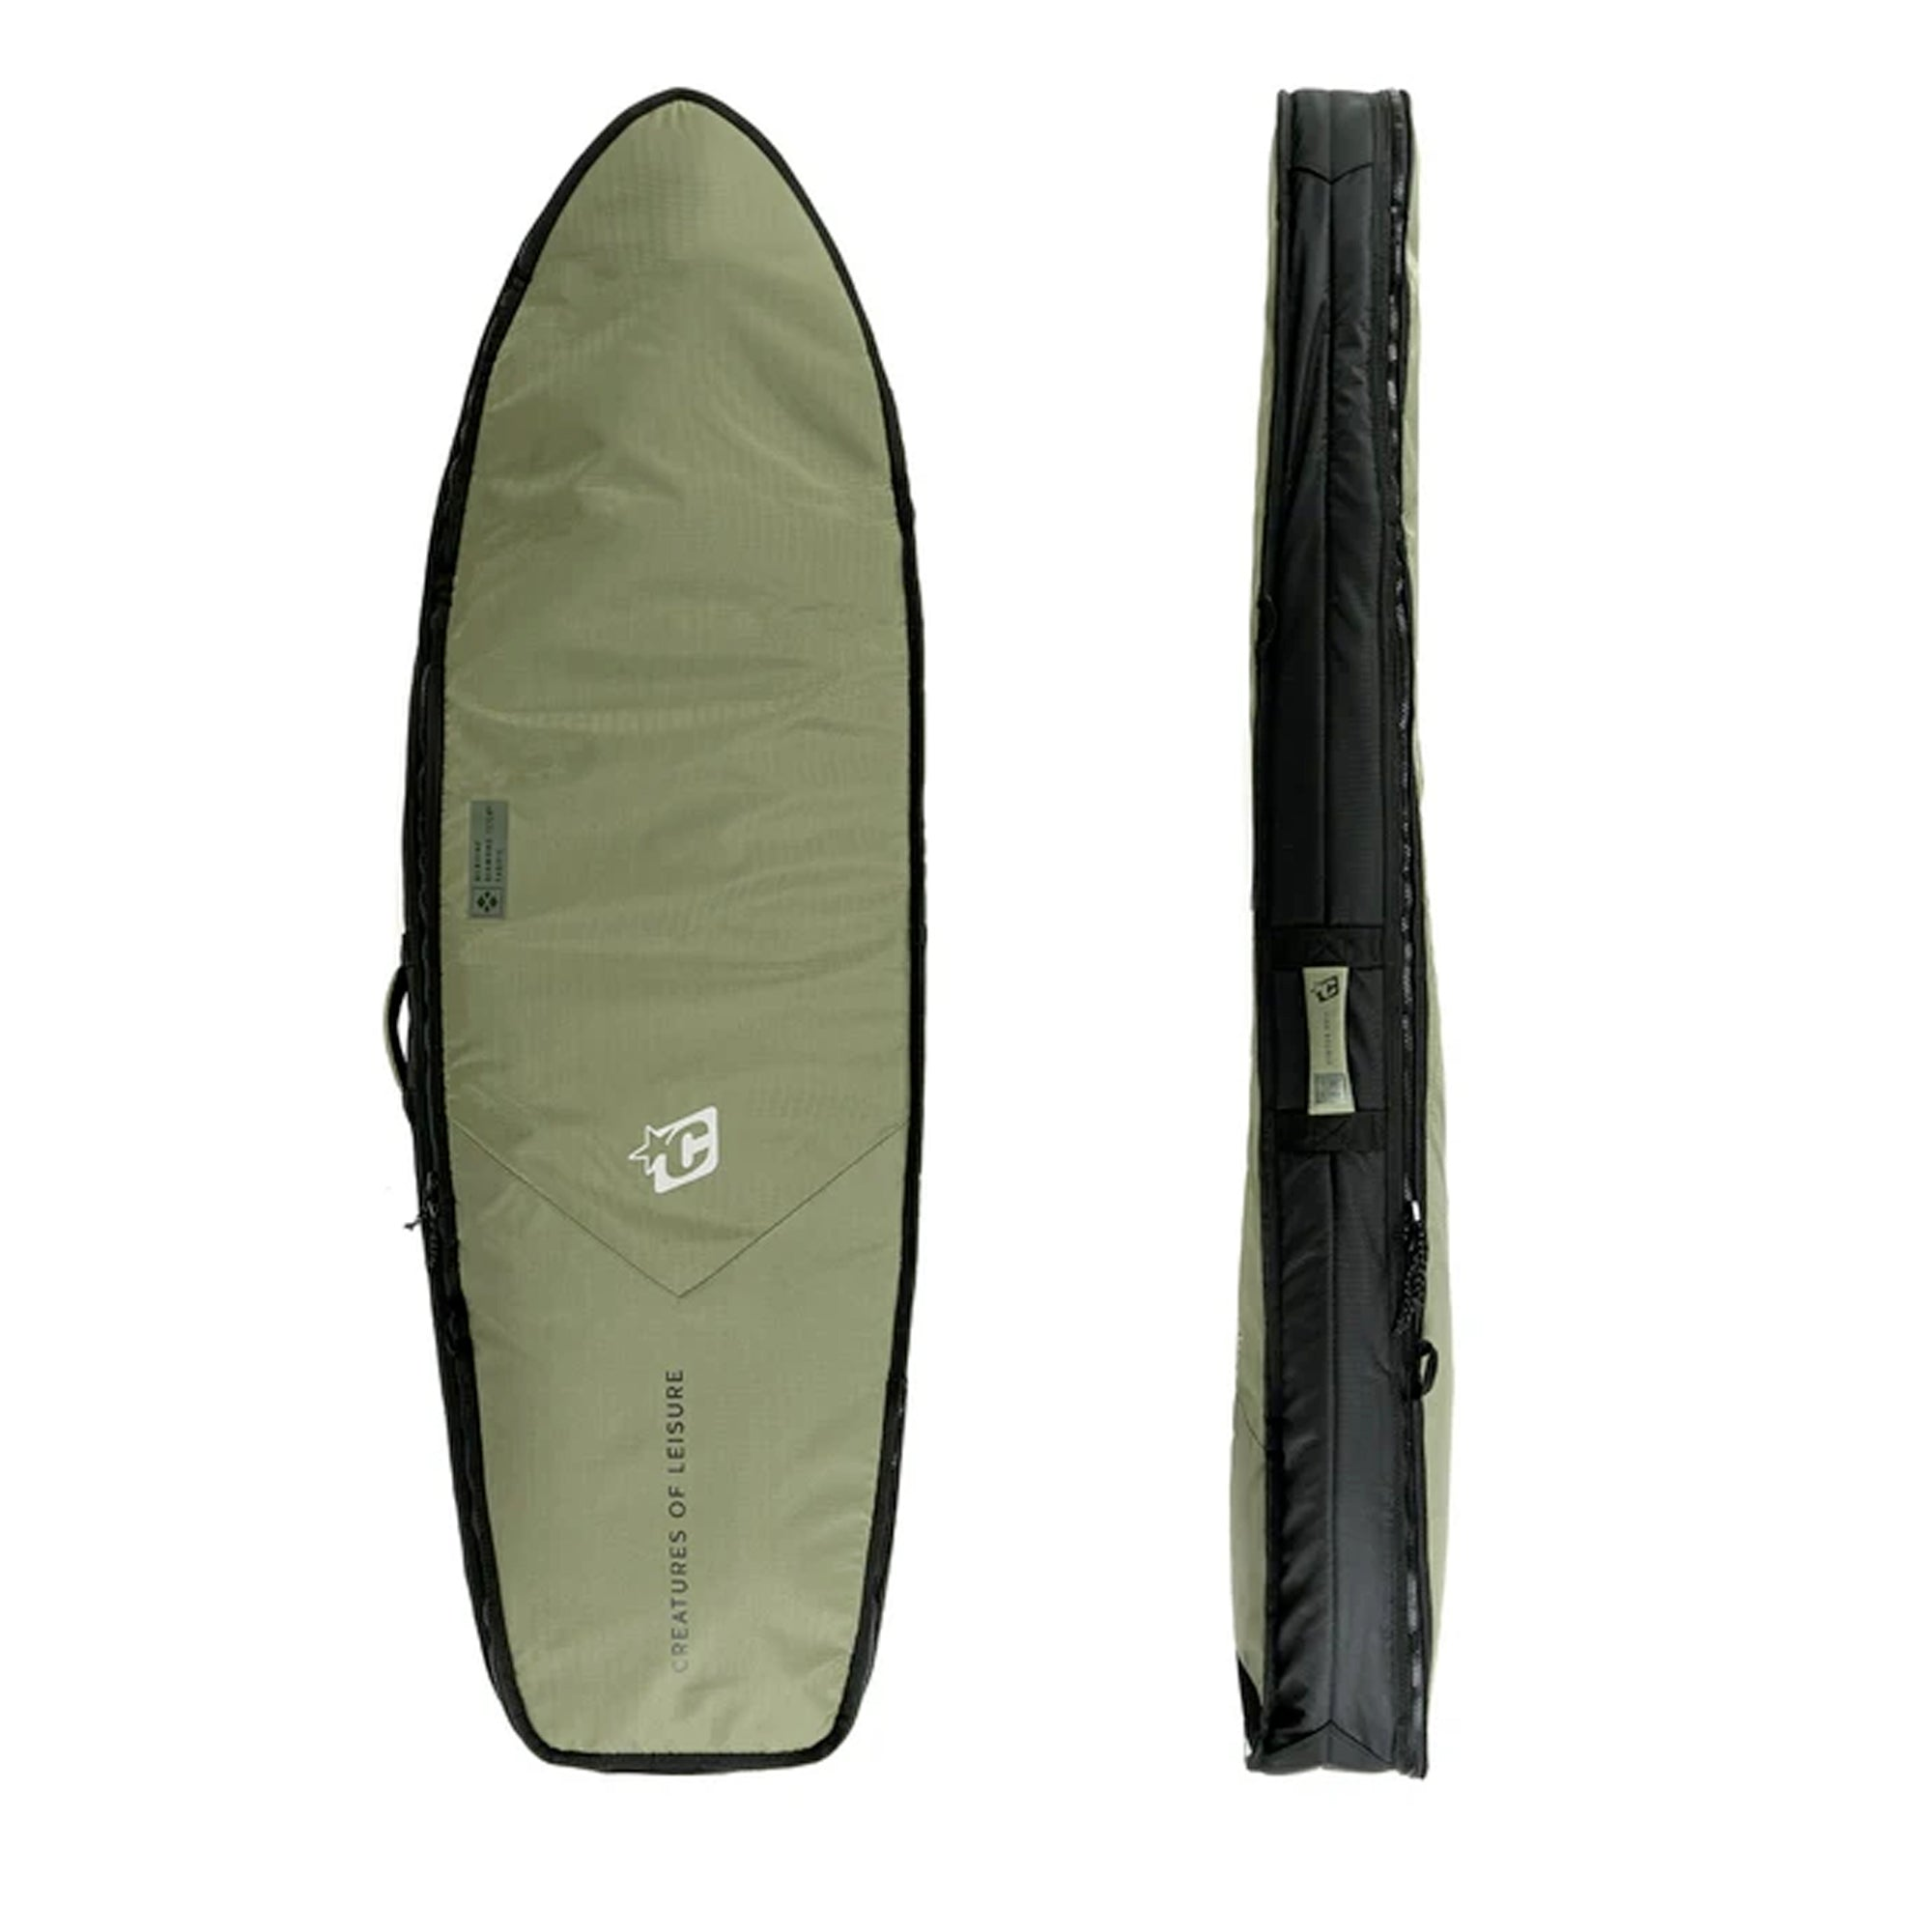 Creatures of Leisure 2021 Fish Double DT2.0 Surfboard Bag